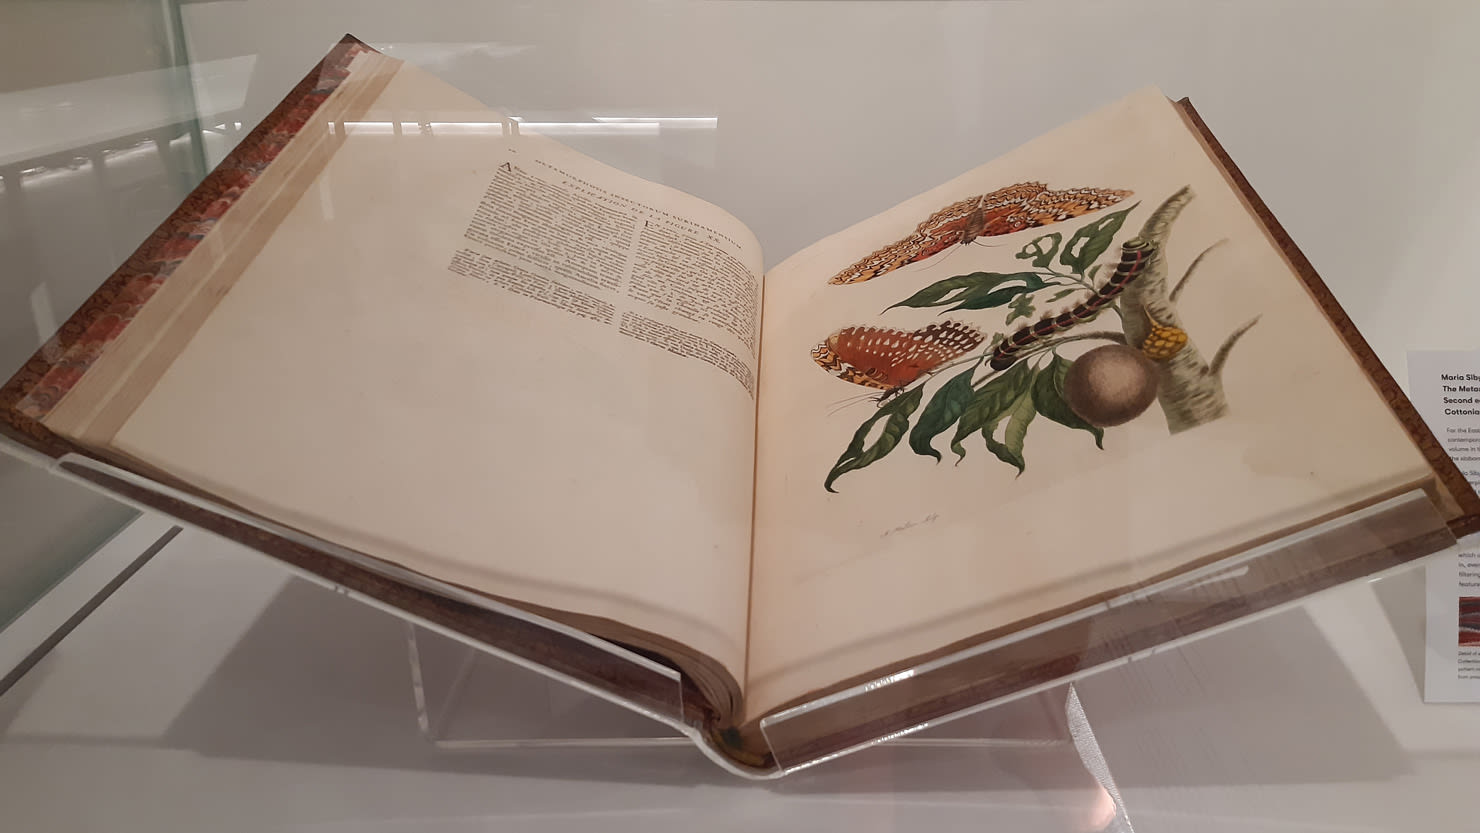 An illustration for 'Insects of Surinam' by Maria Sybilla Merian at The Box, Plymouth